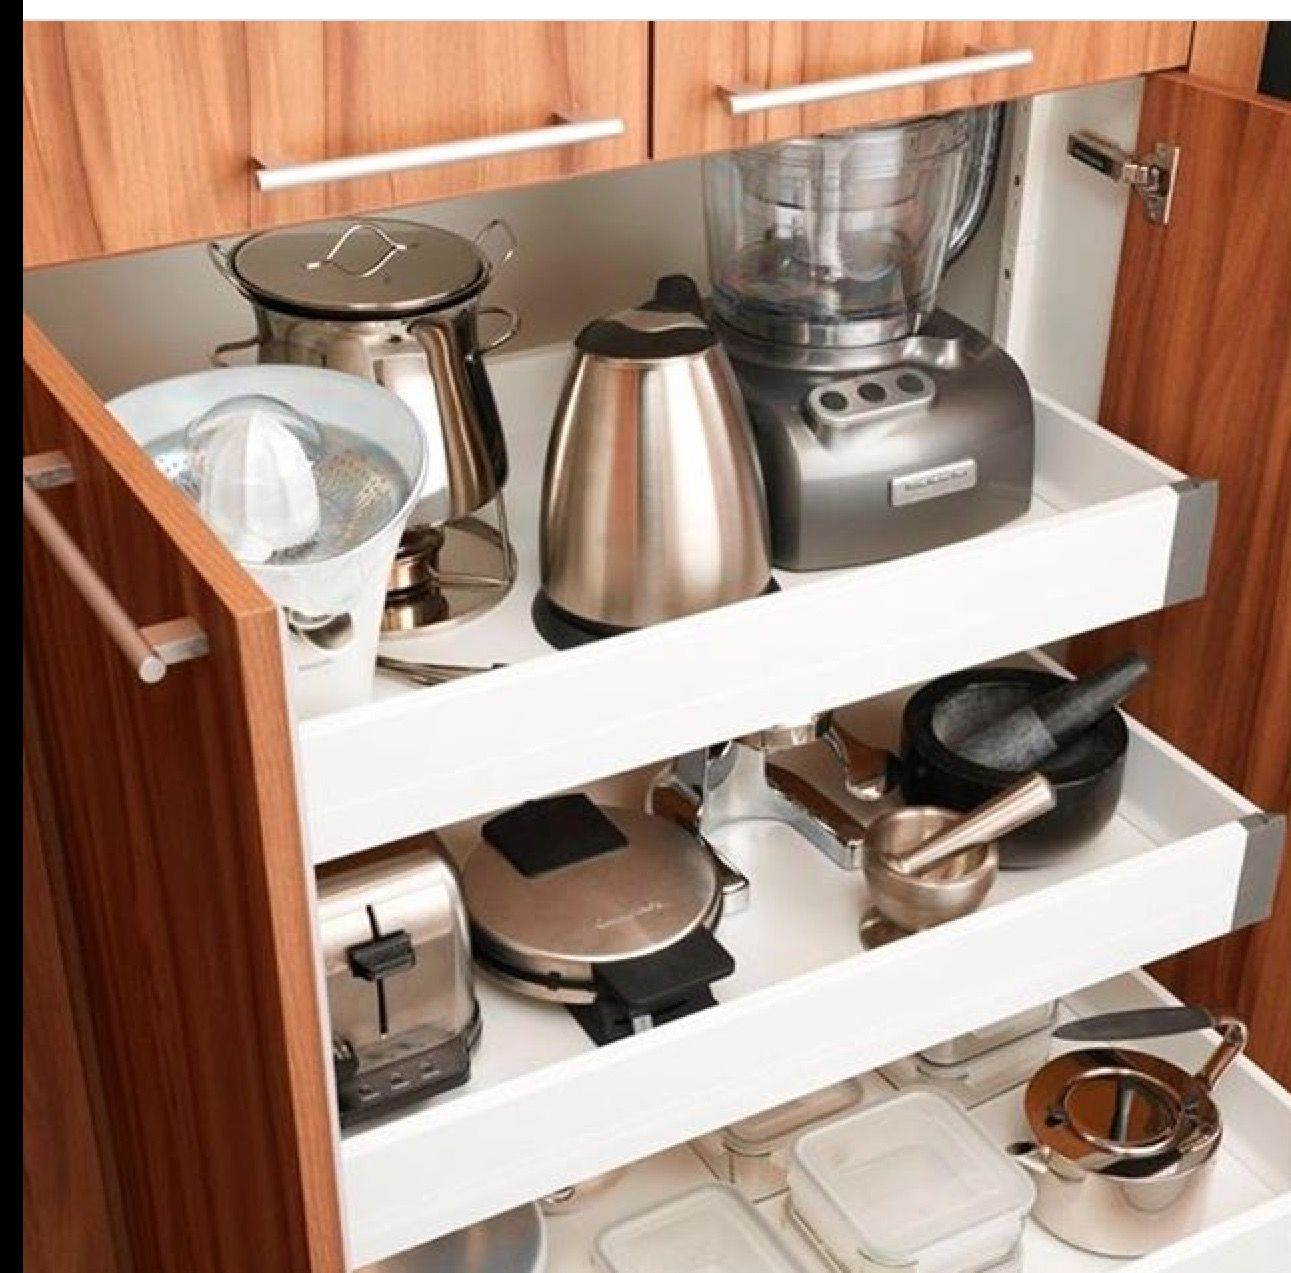 Pin By Coup On Organization Kitchen Cabinet Storage Kitchen Appliance Storage Diy Kitchen Storage